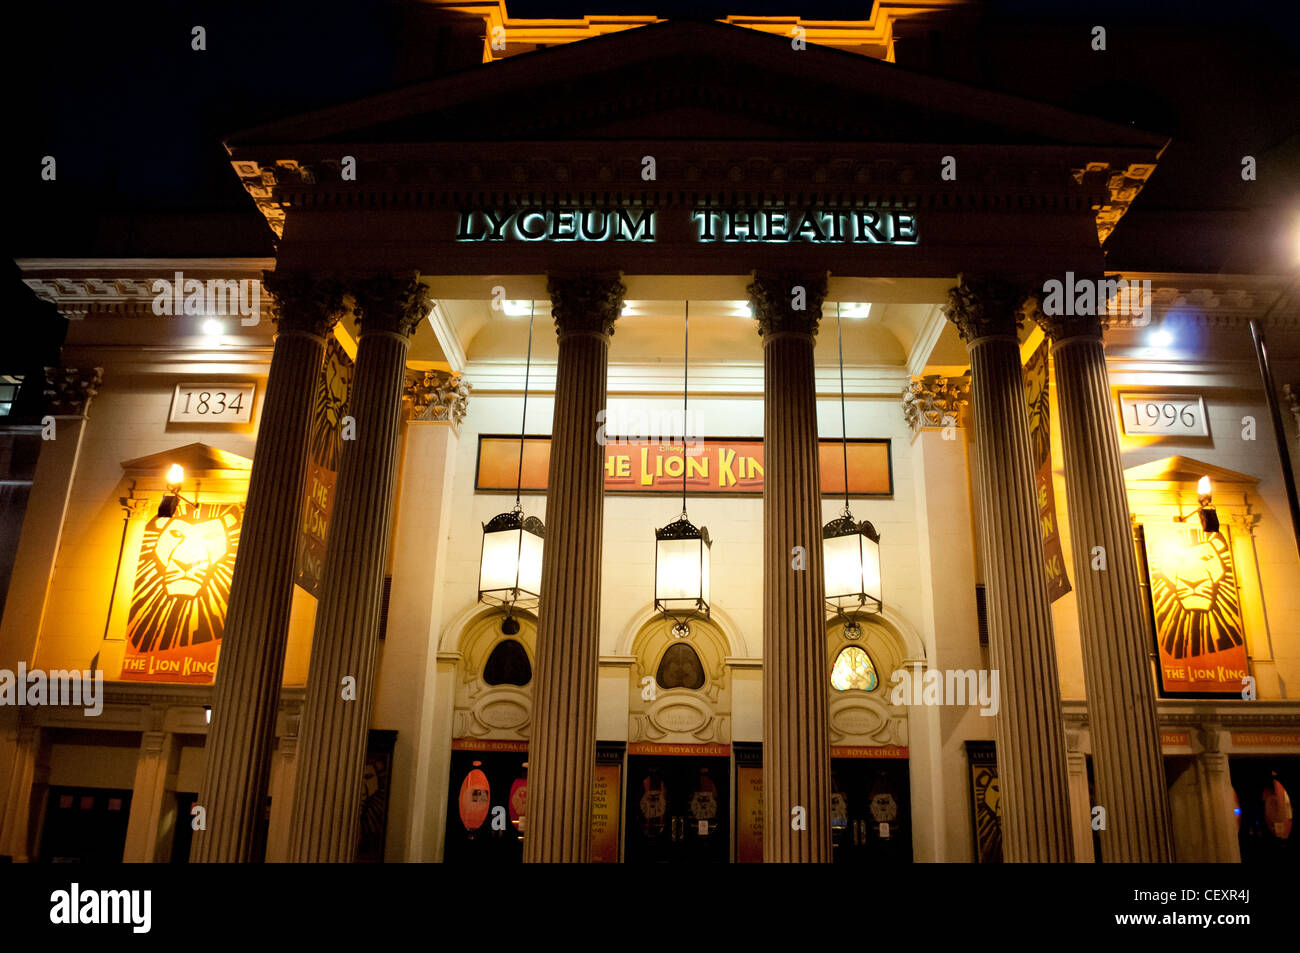 Covent Garden Theatre Stock Photos & Covent Garden Theatre Stock ...